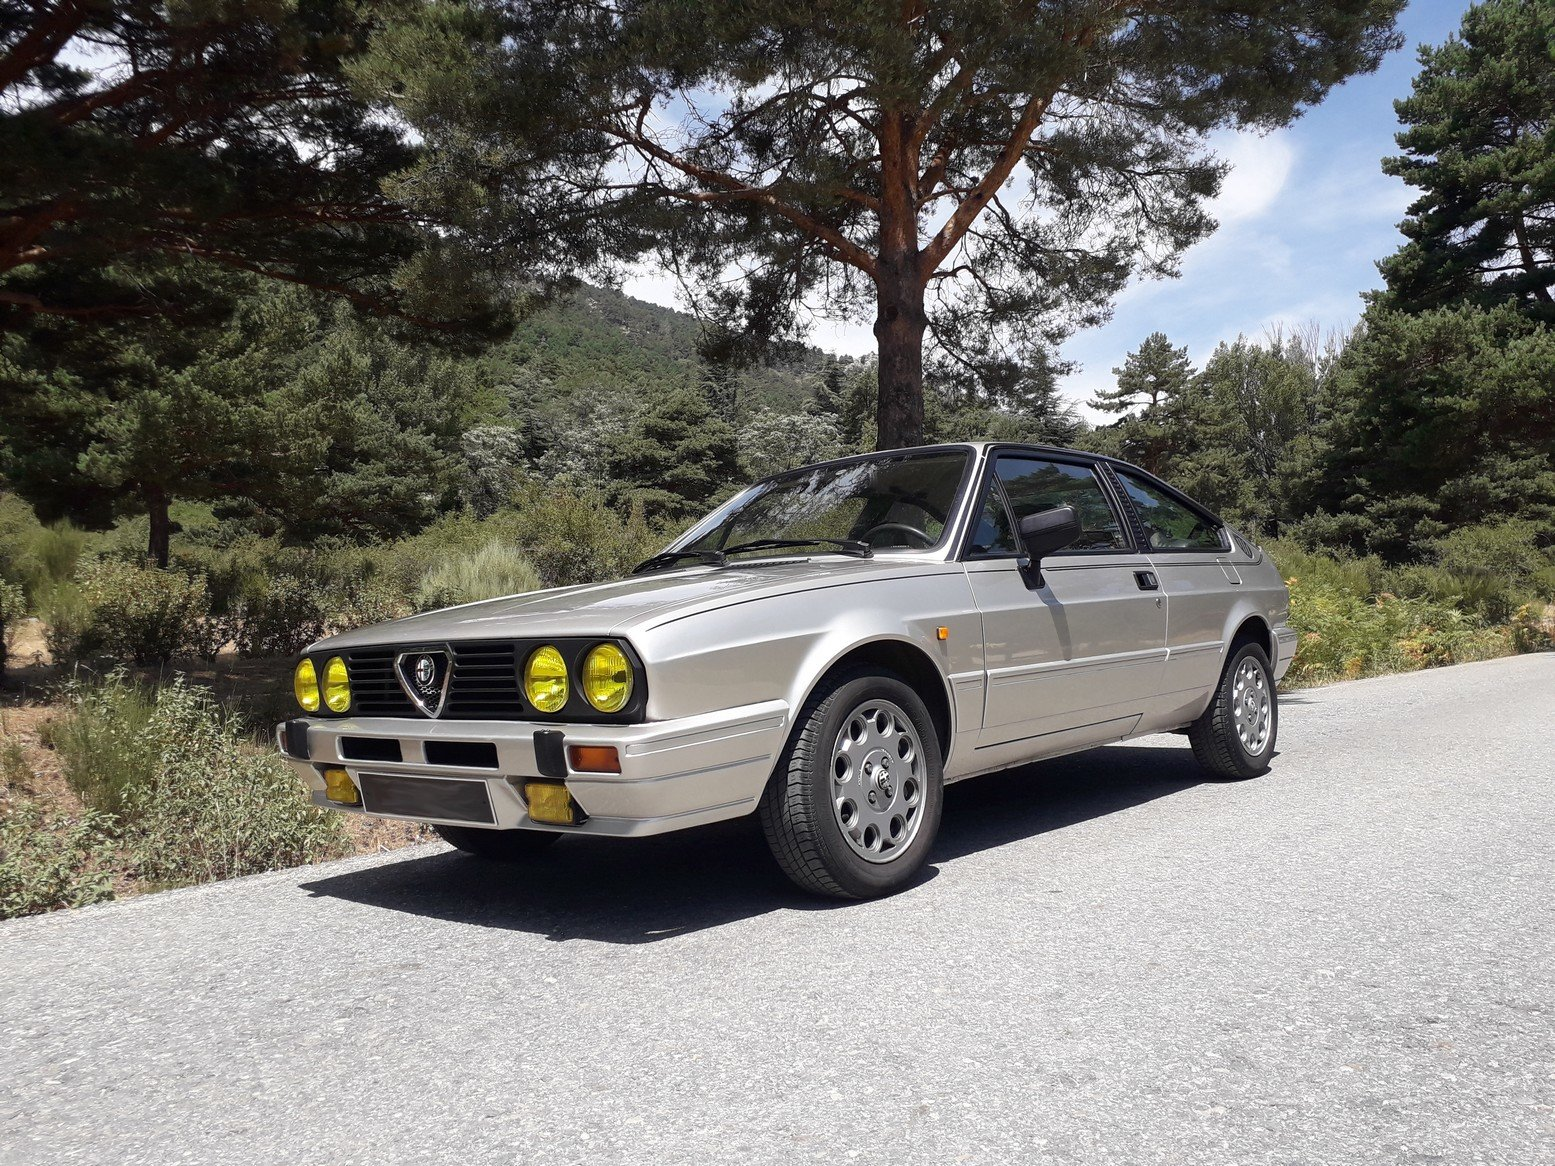 1987 SPRINT GRAND PRIX Limited edition Rare 1 owner  For Sale (picture 3 of 6)